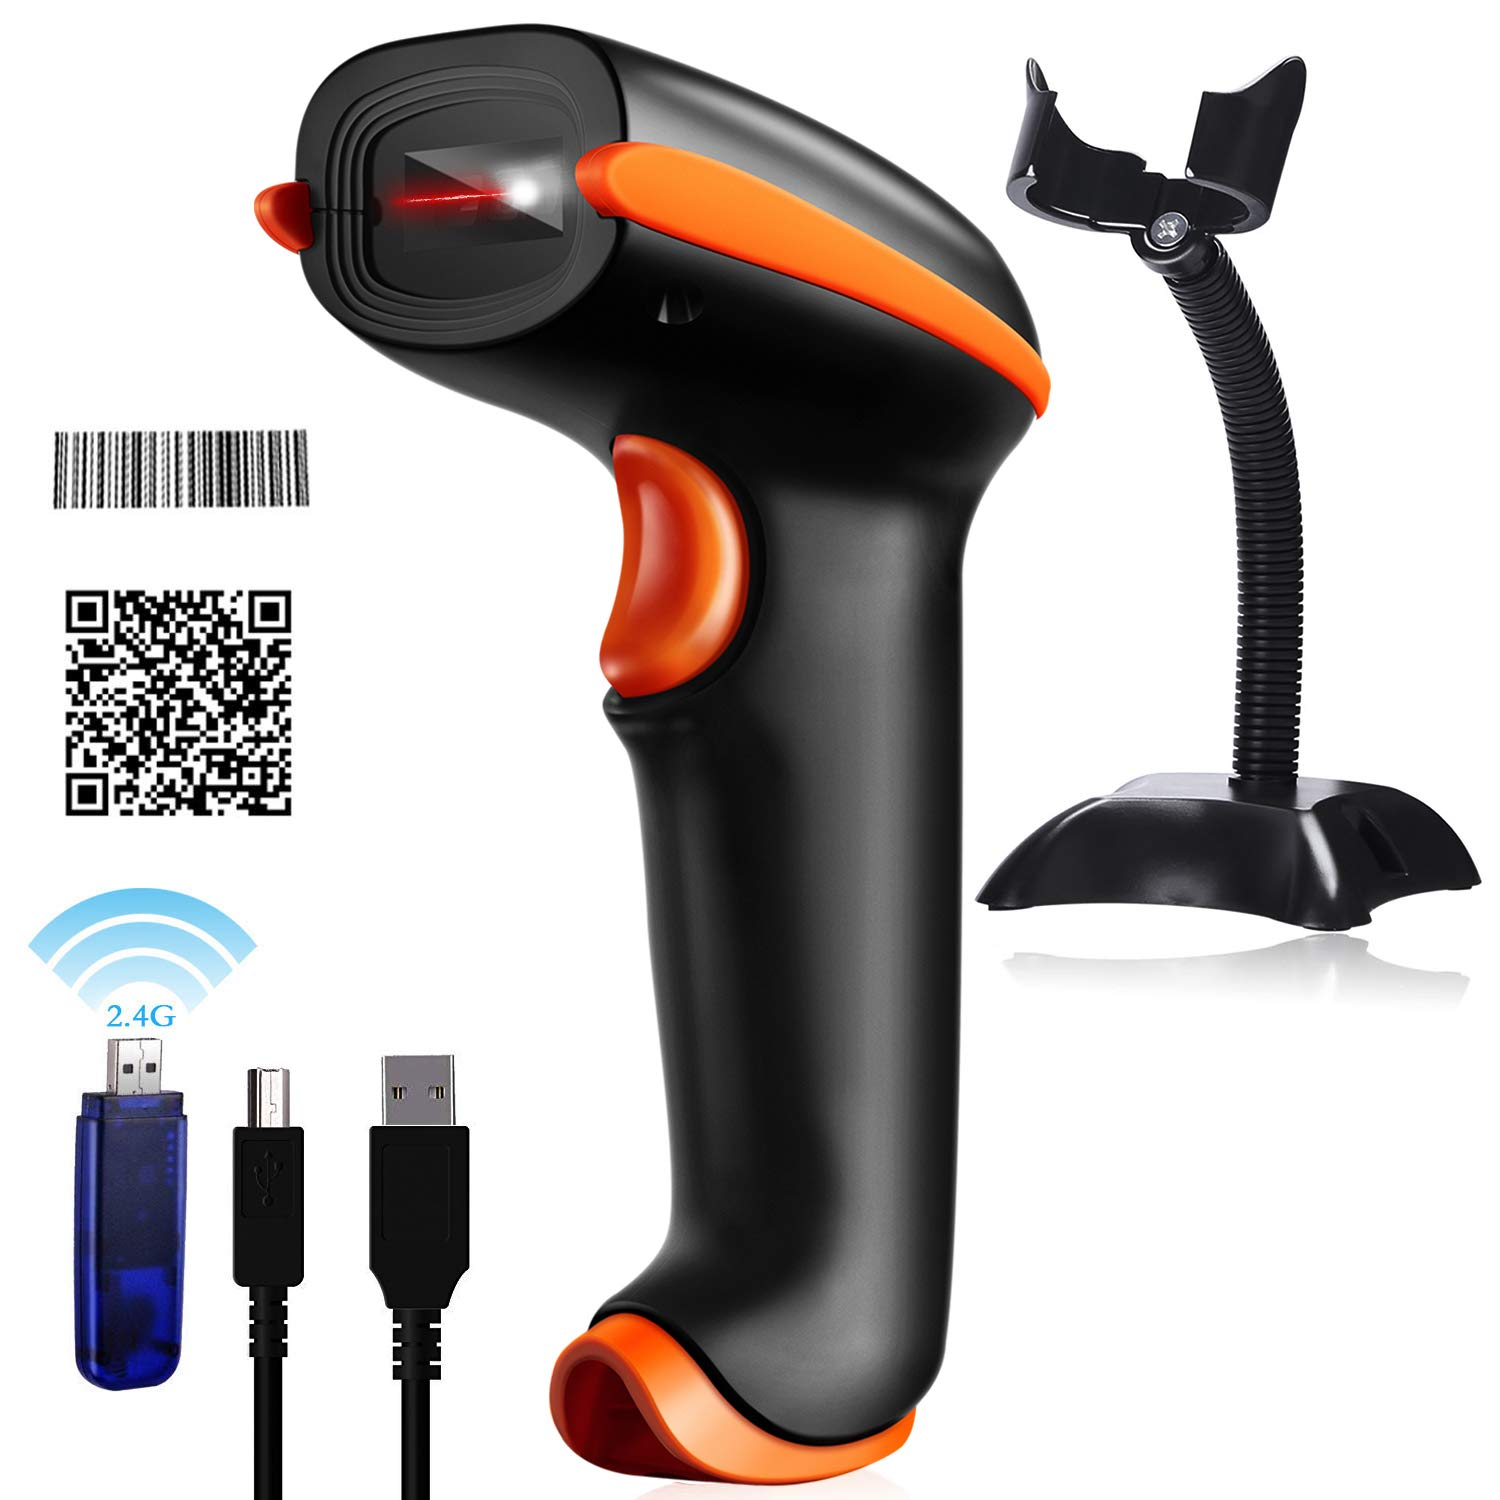 Tera Wireless Barcode Scanner 1D 2D with USB Cradle Charging Base Handheld Bar Code Reader Scanner Automatic Sensing Fast Precise Scanner US-EVHK0006-1